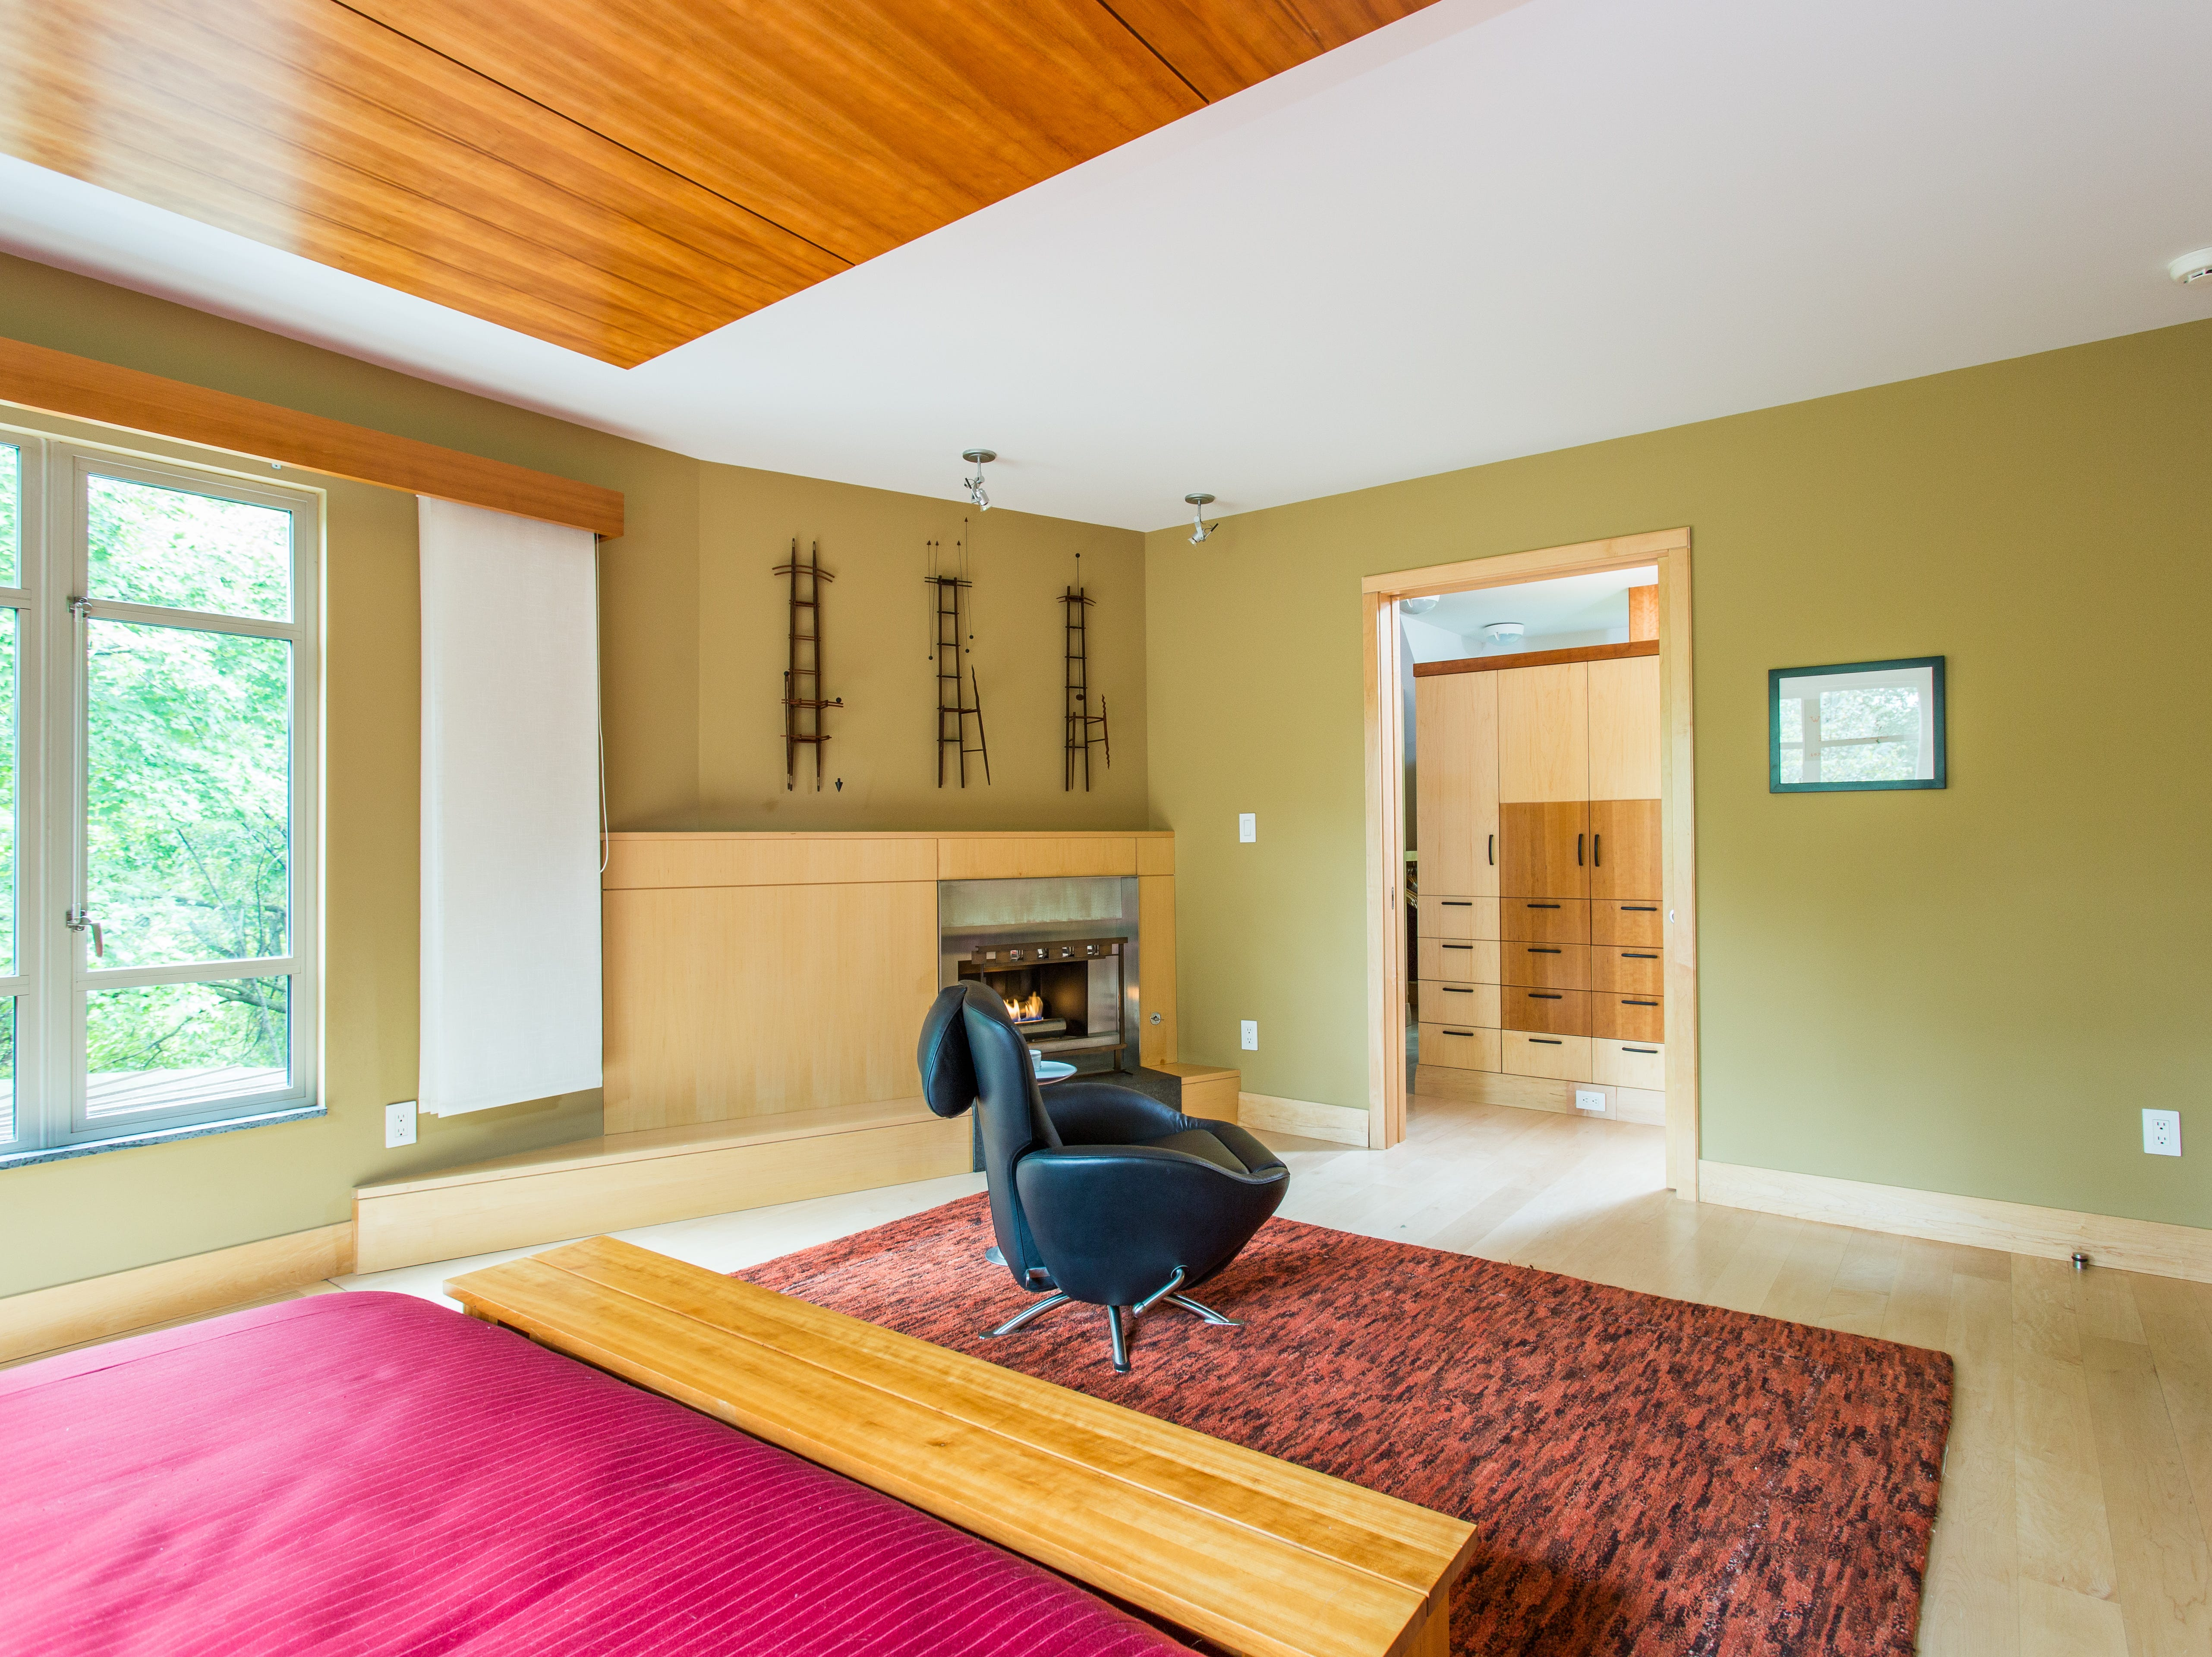 The master suite includes a fireplace and large custom closet.